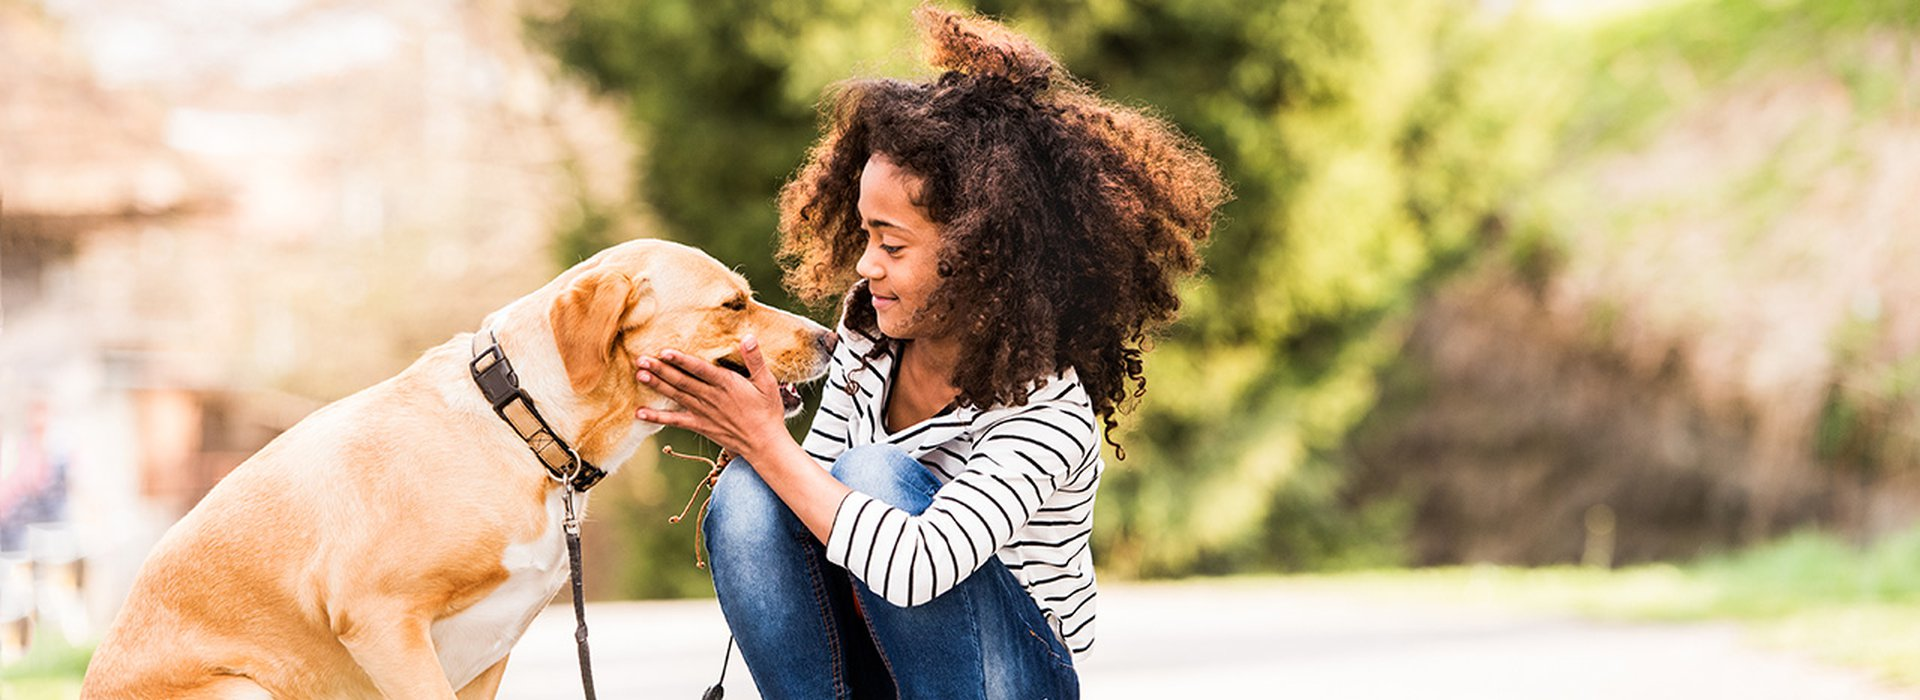 African american girl outdoors on skateboard with her dog